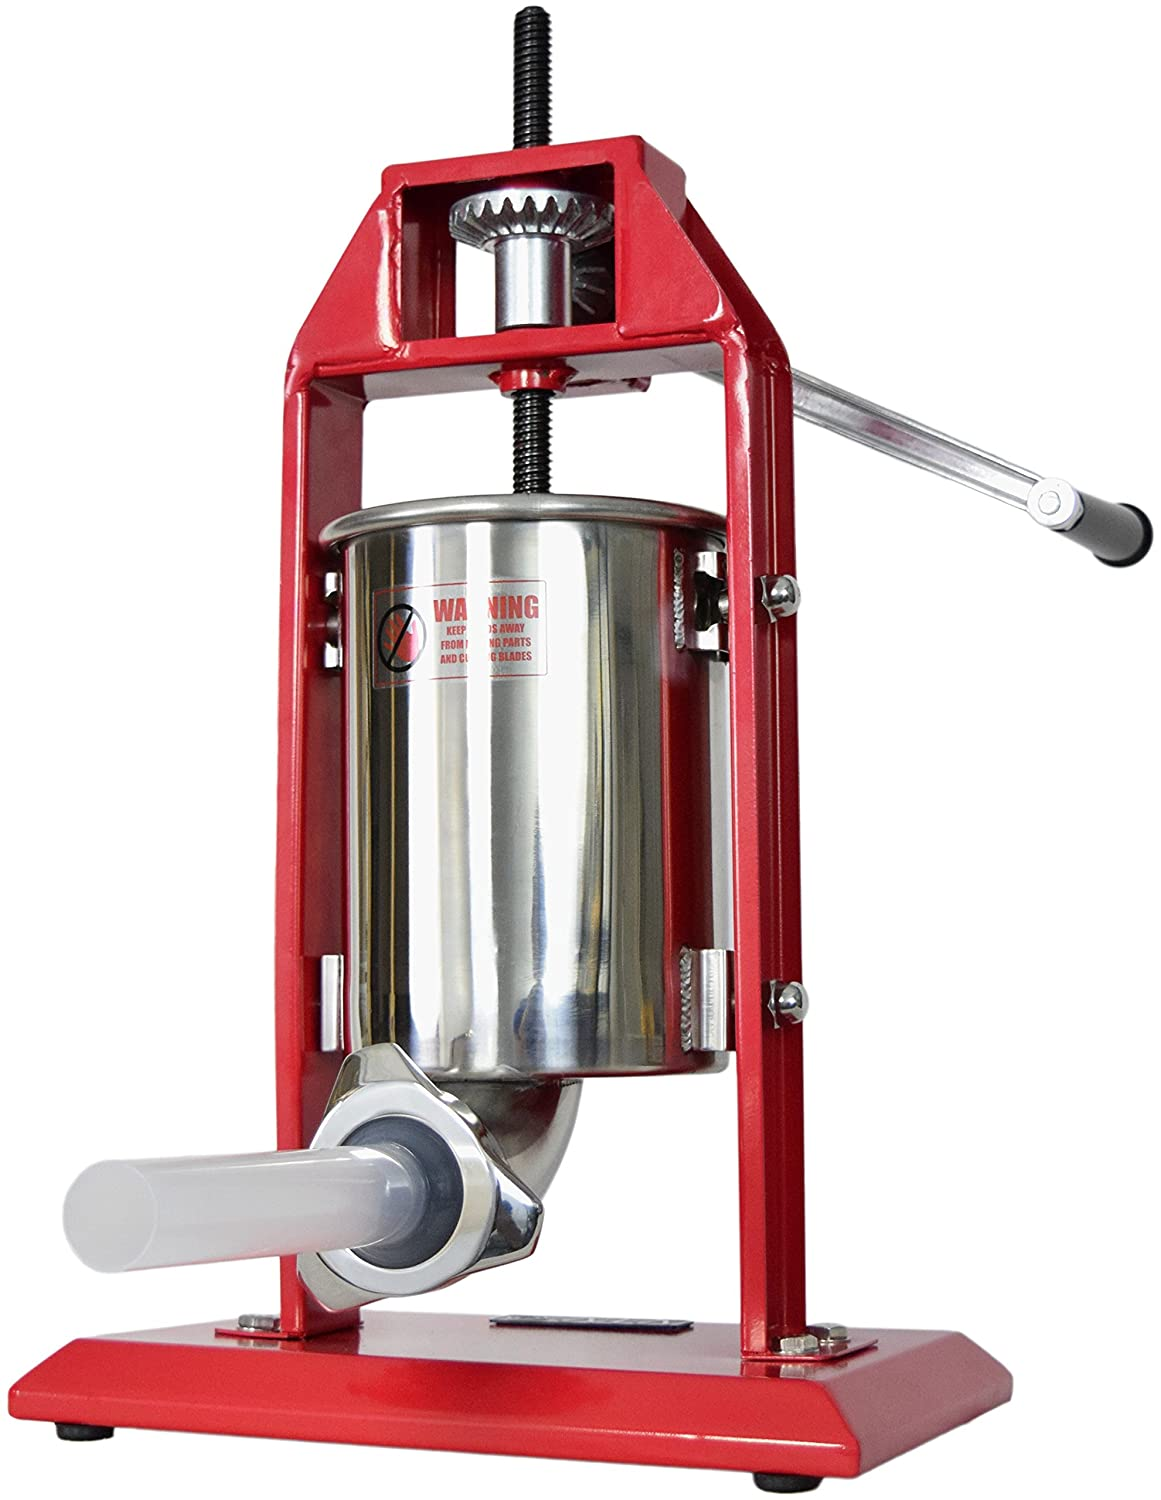 VIVO Sausage Stuffer Vertical Stainless Steel 3L/7LB 5-7 Pound Meat Filler ~ by VIVO (STUFR-V003)